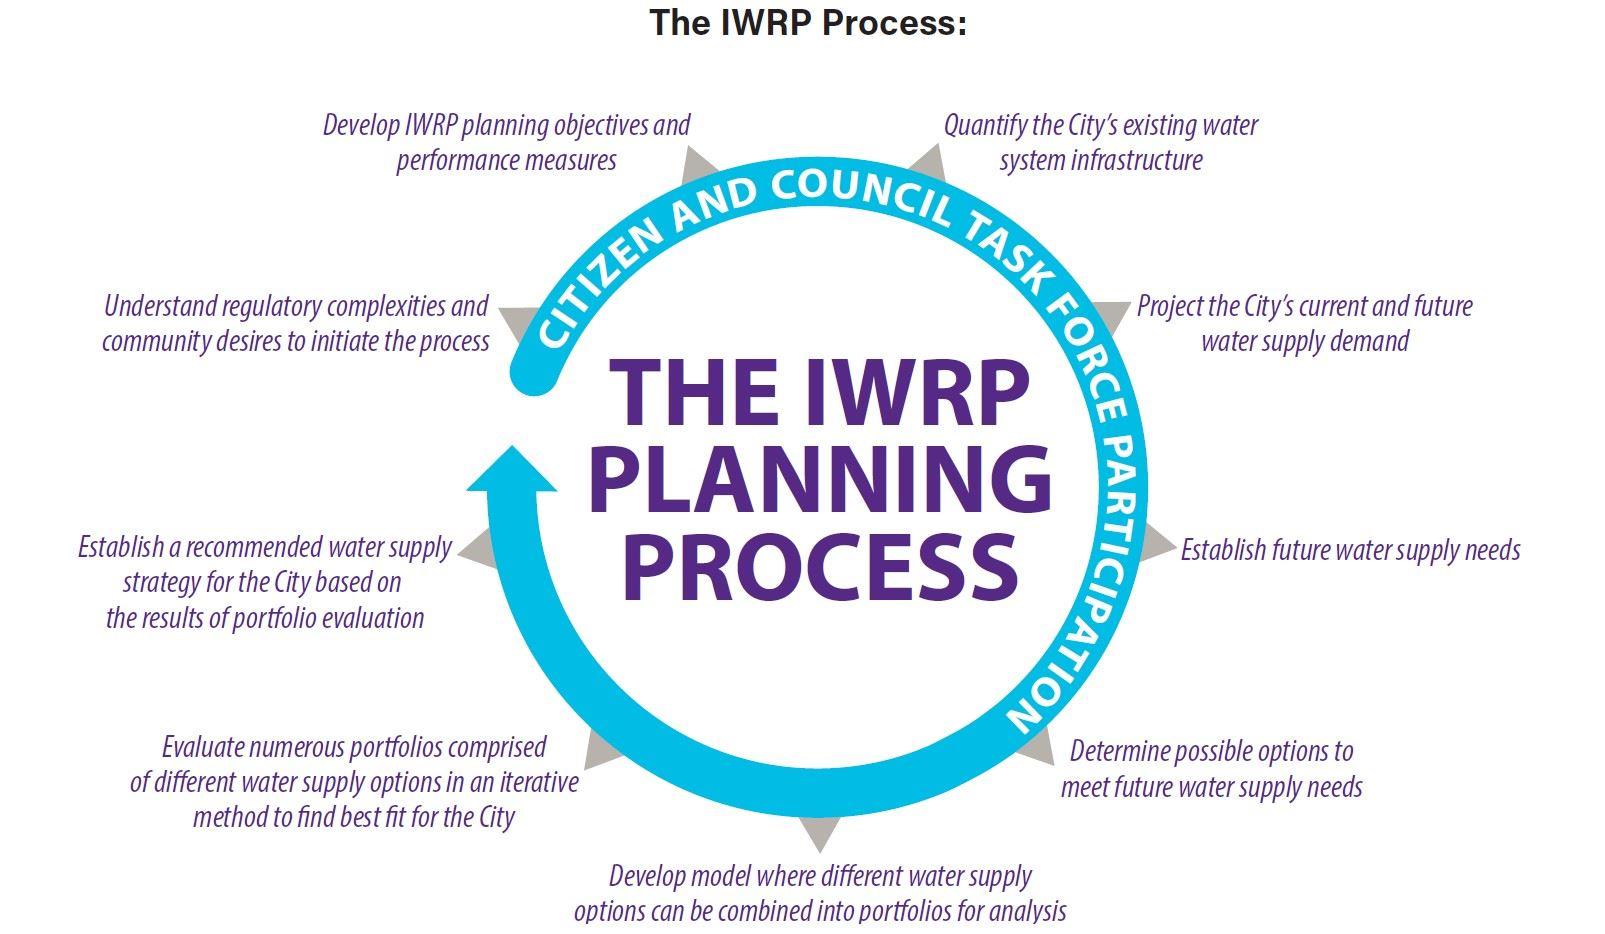 The IWRP Process